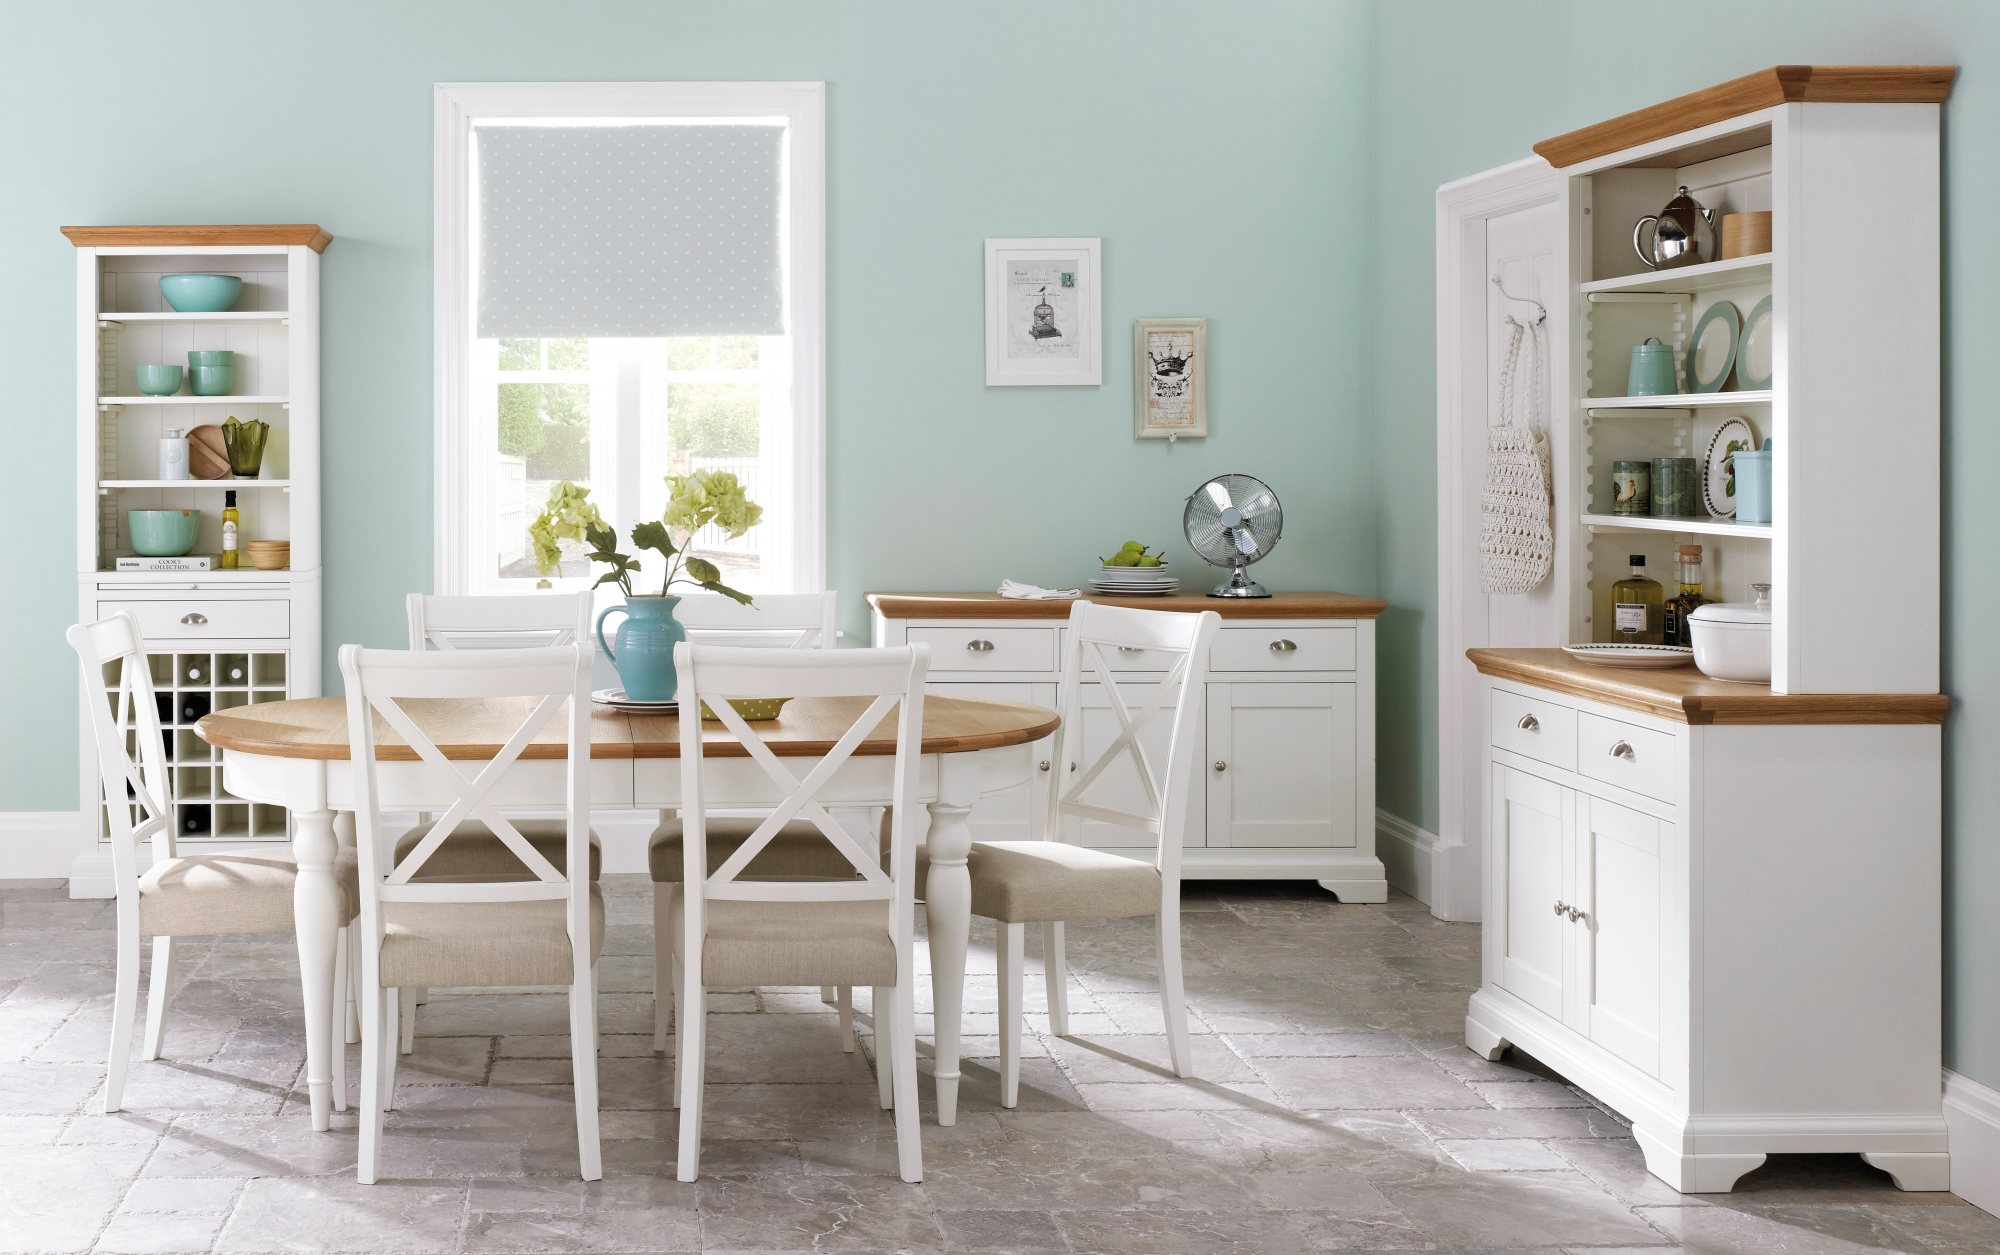 KYRA TWO TONE DINING SET X-BACK CHAIRS - TABLE DIMENSIONS L181cm x D97cm x H77cm